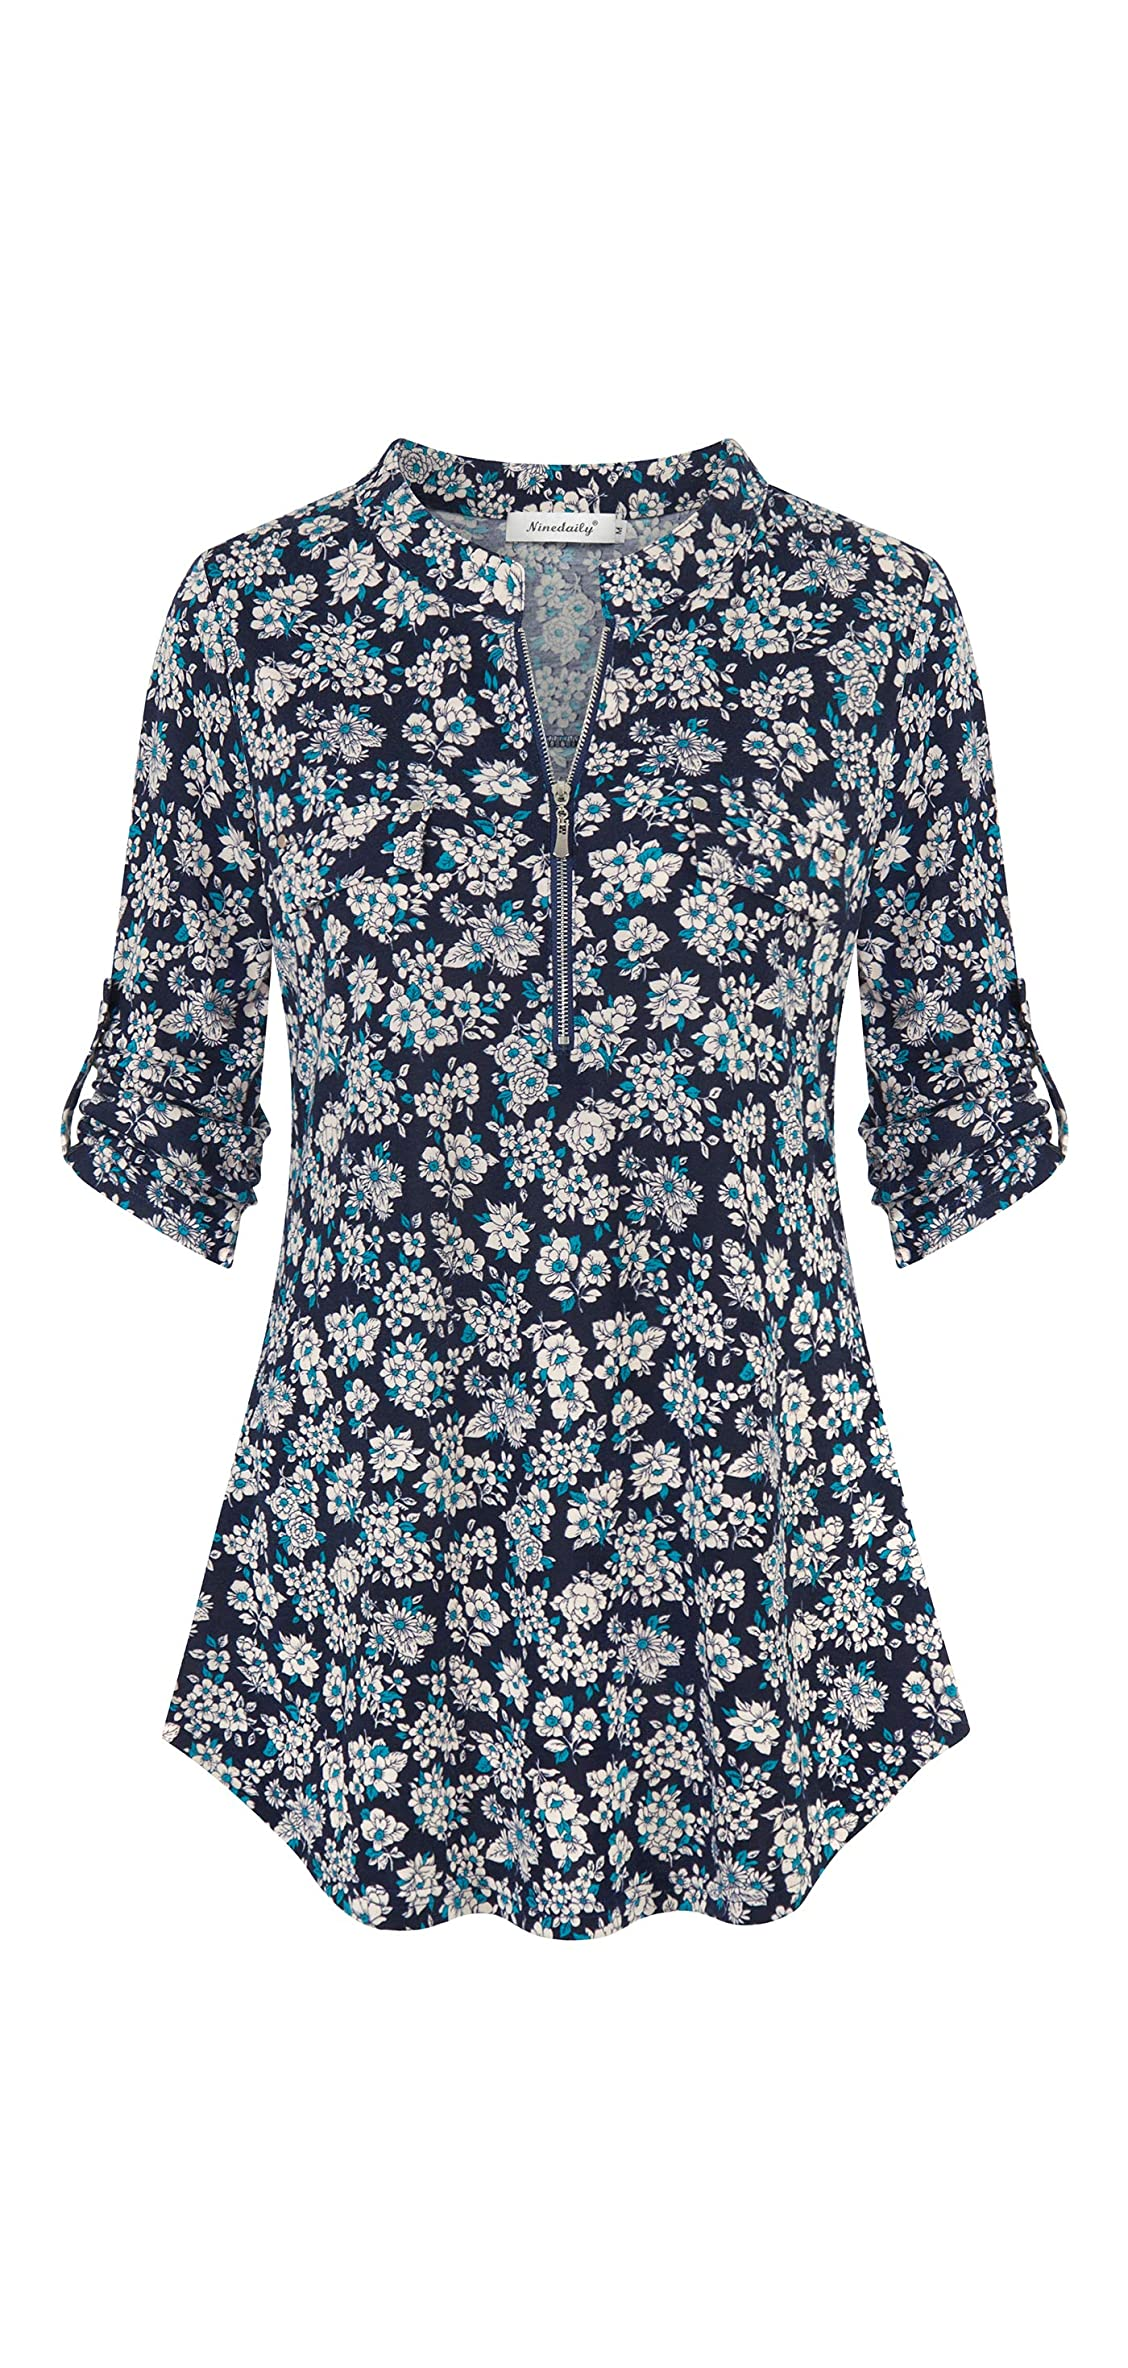 Women's / Sleeve Roll Up Shirts Zip Floral Casual